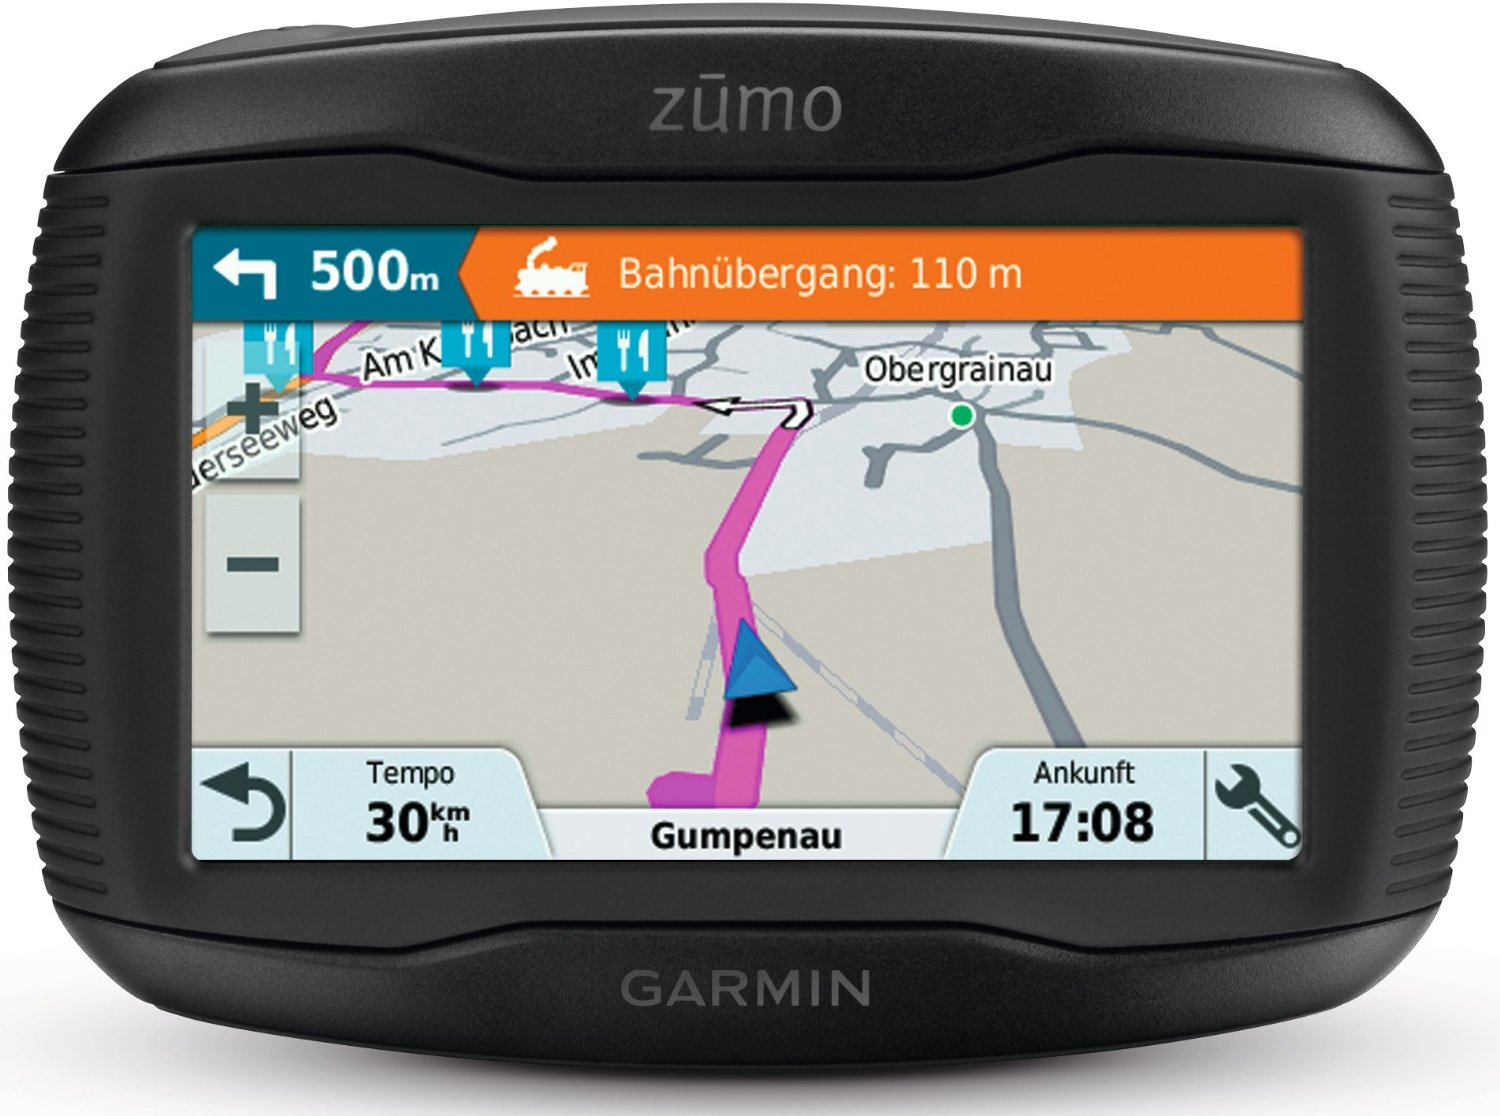 garmin zumo 345lm uk weurope gps satnav motorcycle bluetooth lifetime map update ebay. Black Bedroom Furniture Sets. Home Design Ideas